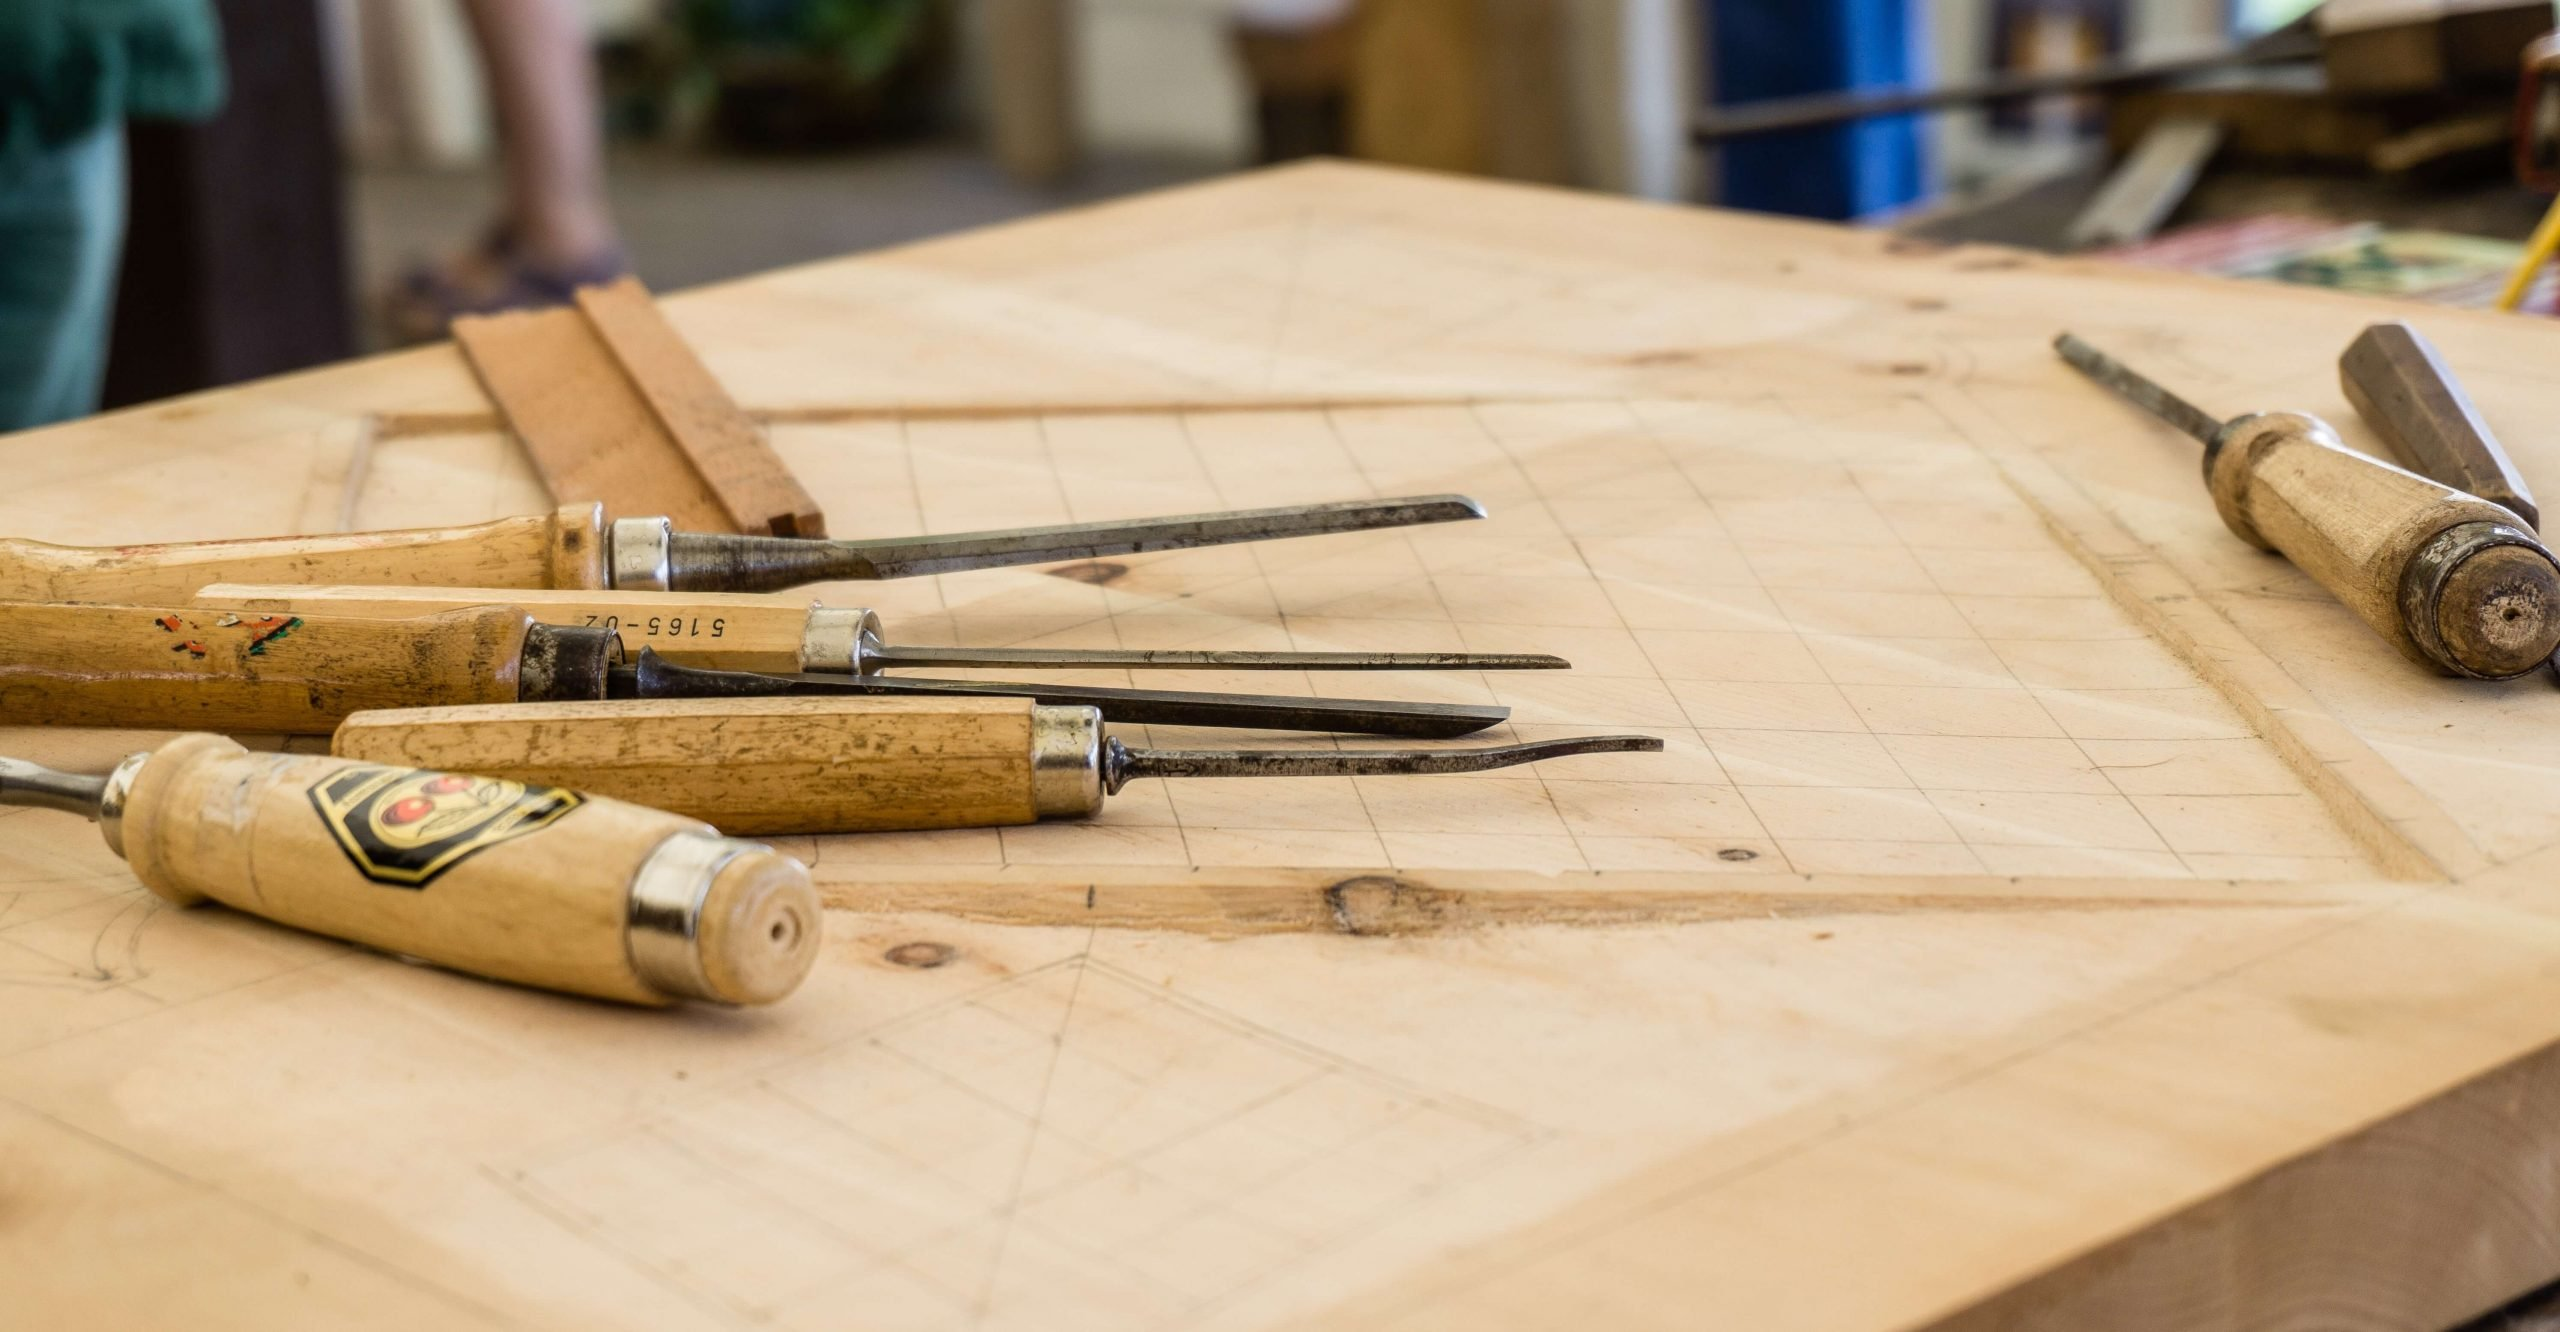 30 DIY Carpentry Projects For Beginners